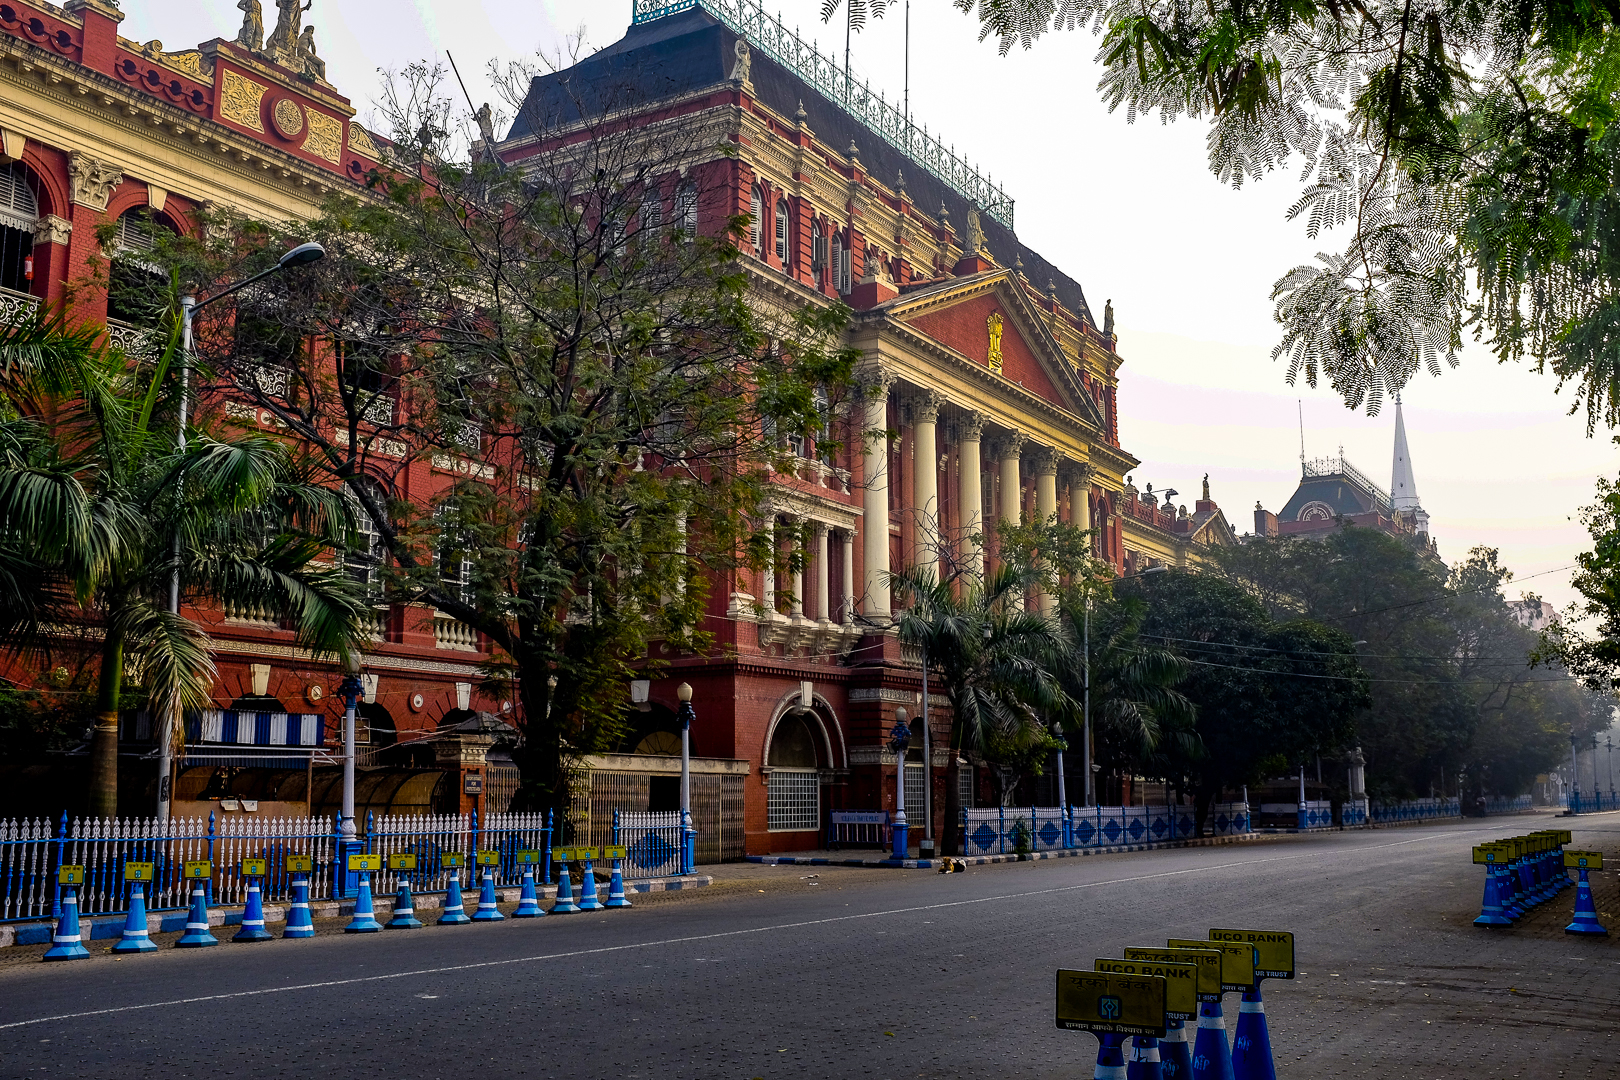 The Writer's Building at the northern end of Dalhousie/BBD Bagh.